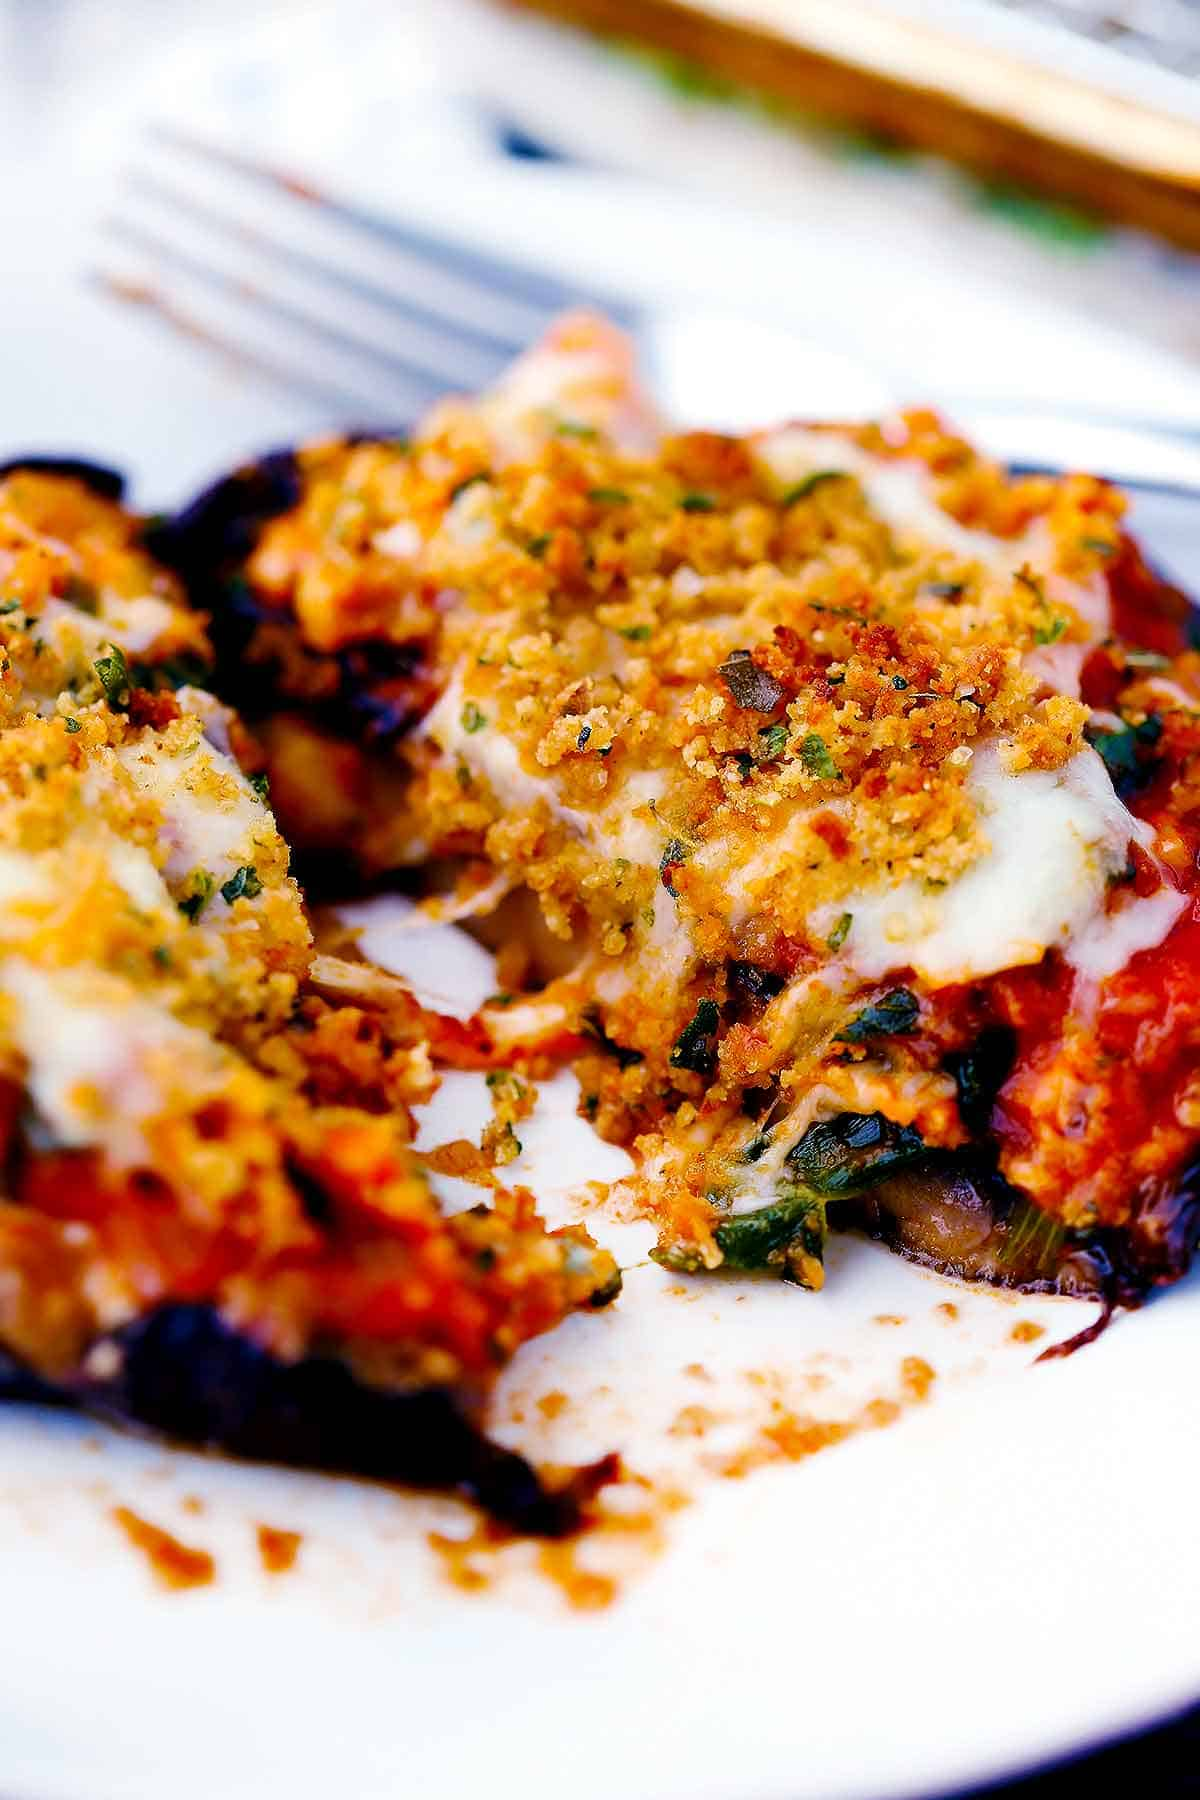 A stuffed portobello mushroom cut in half with cheese and breadcrumbs on top.